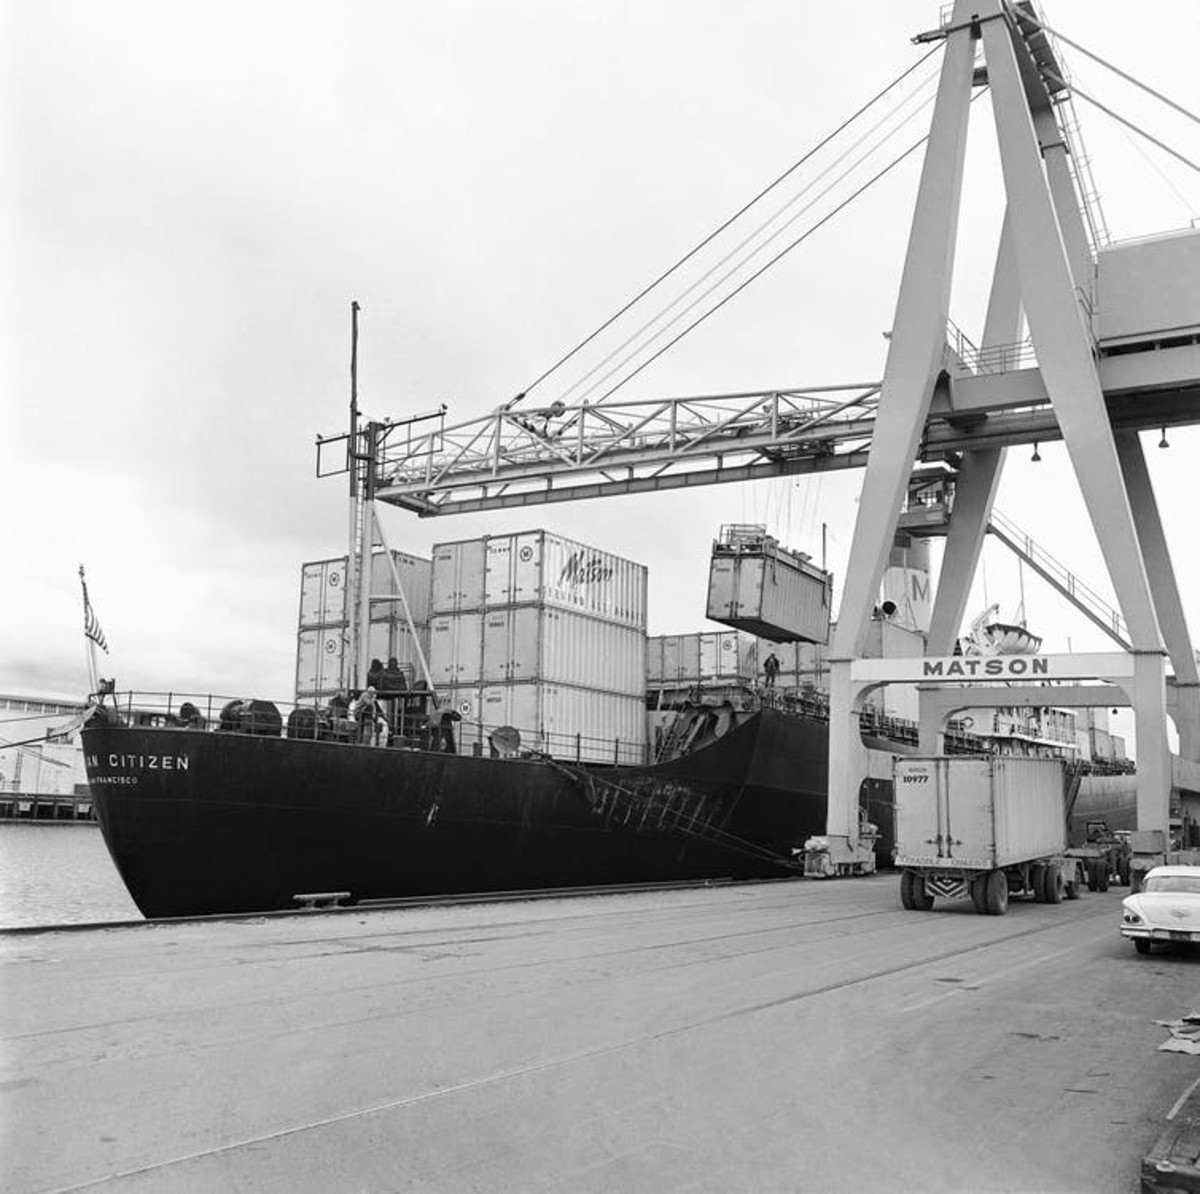 The Matson Hawaiian Citizen was one of the first ships converted into a container vessel, seen here at a San Francisco pier in 1963. AP Photo